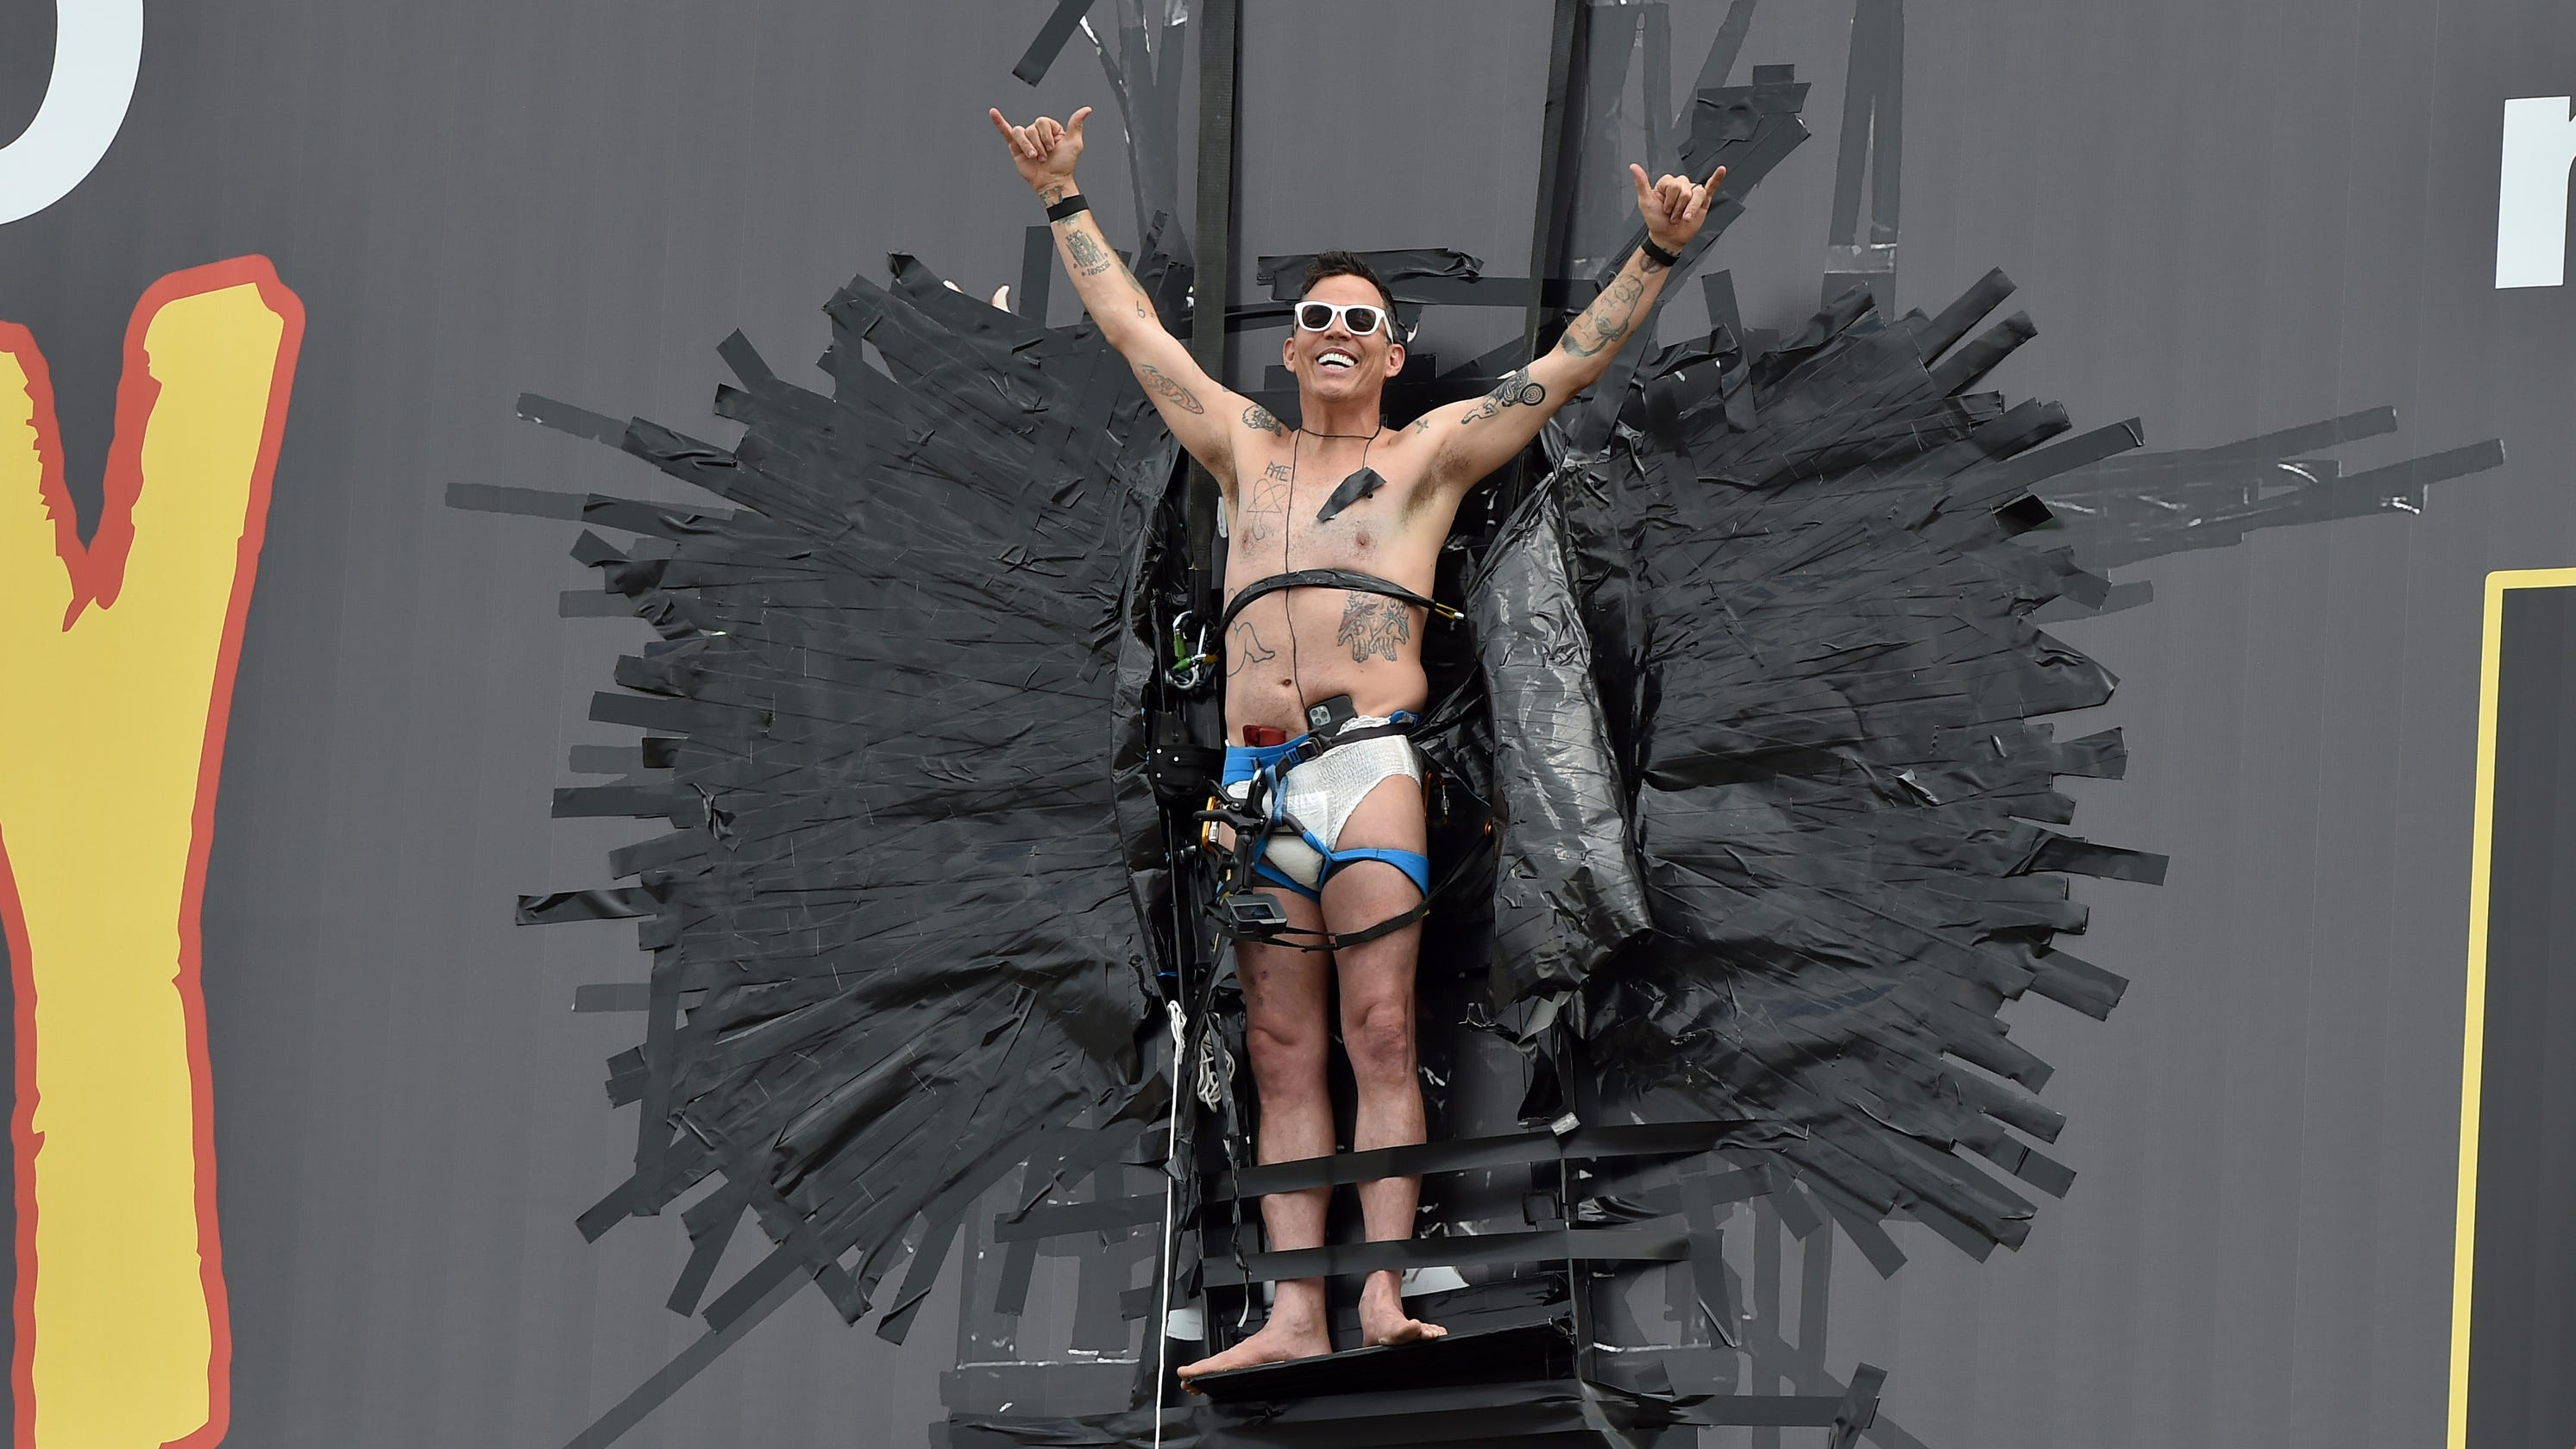 'Jackass' Steve-O duct tapes self to Hollywood billboard in diaper, removed by fire department